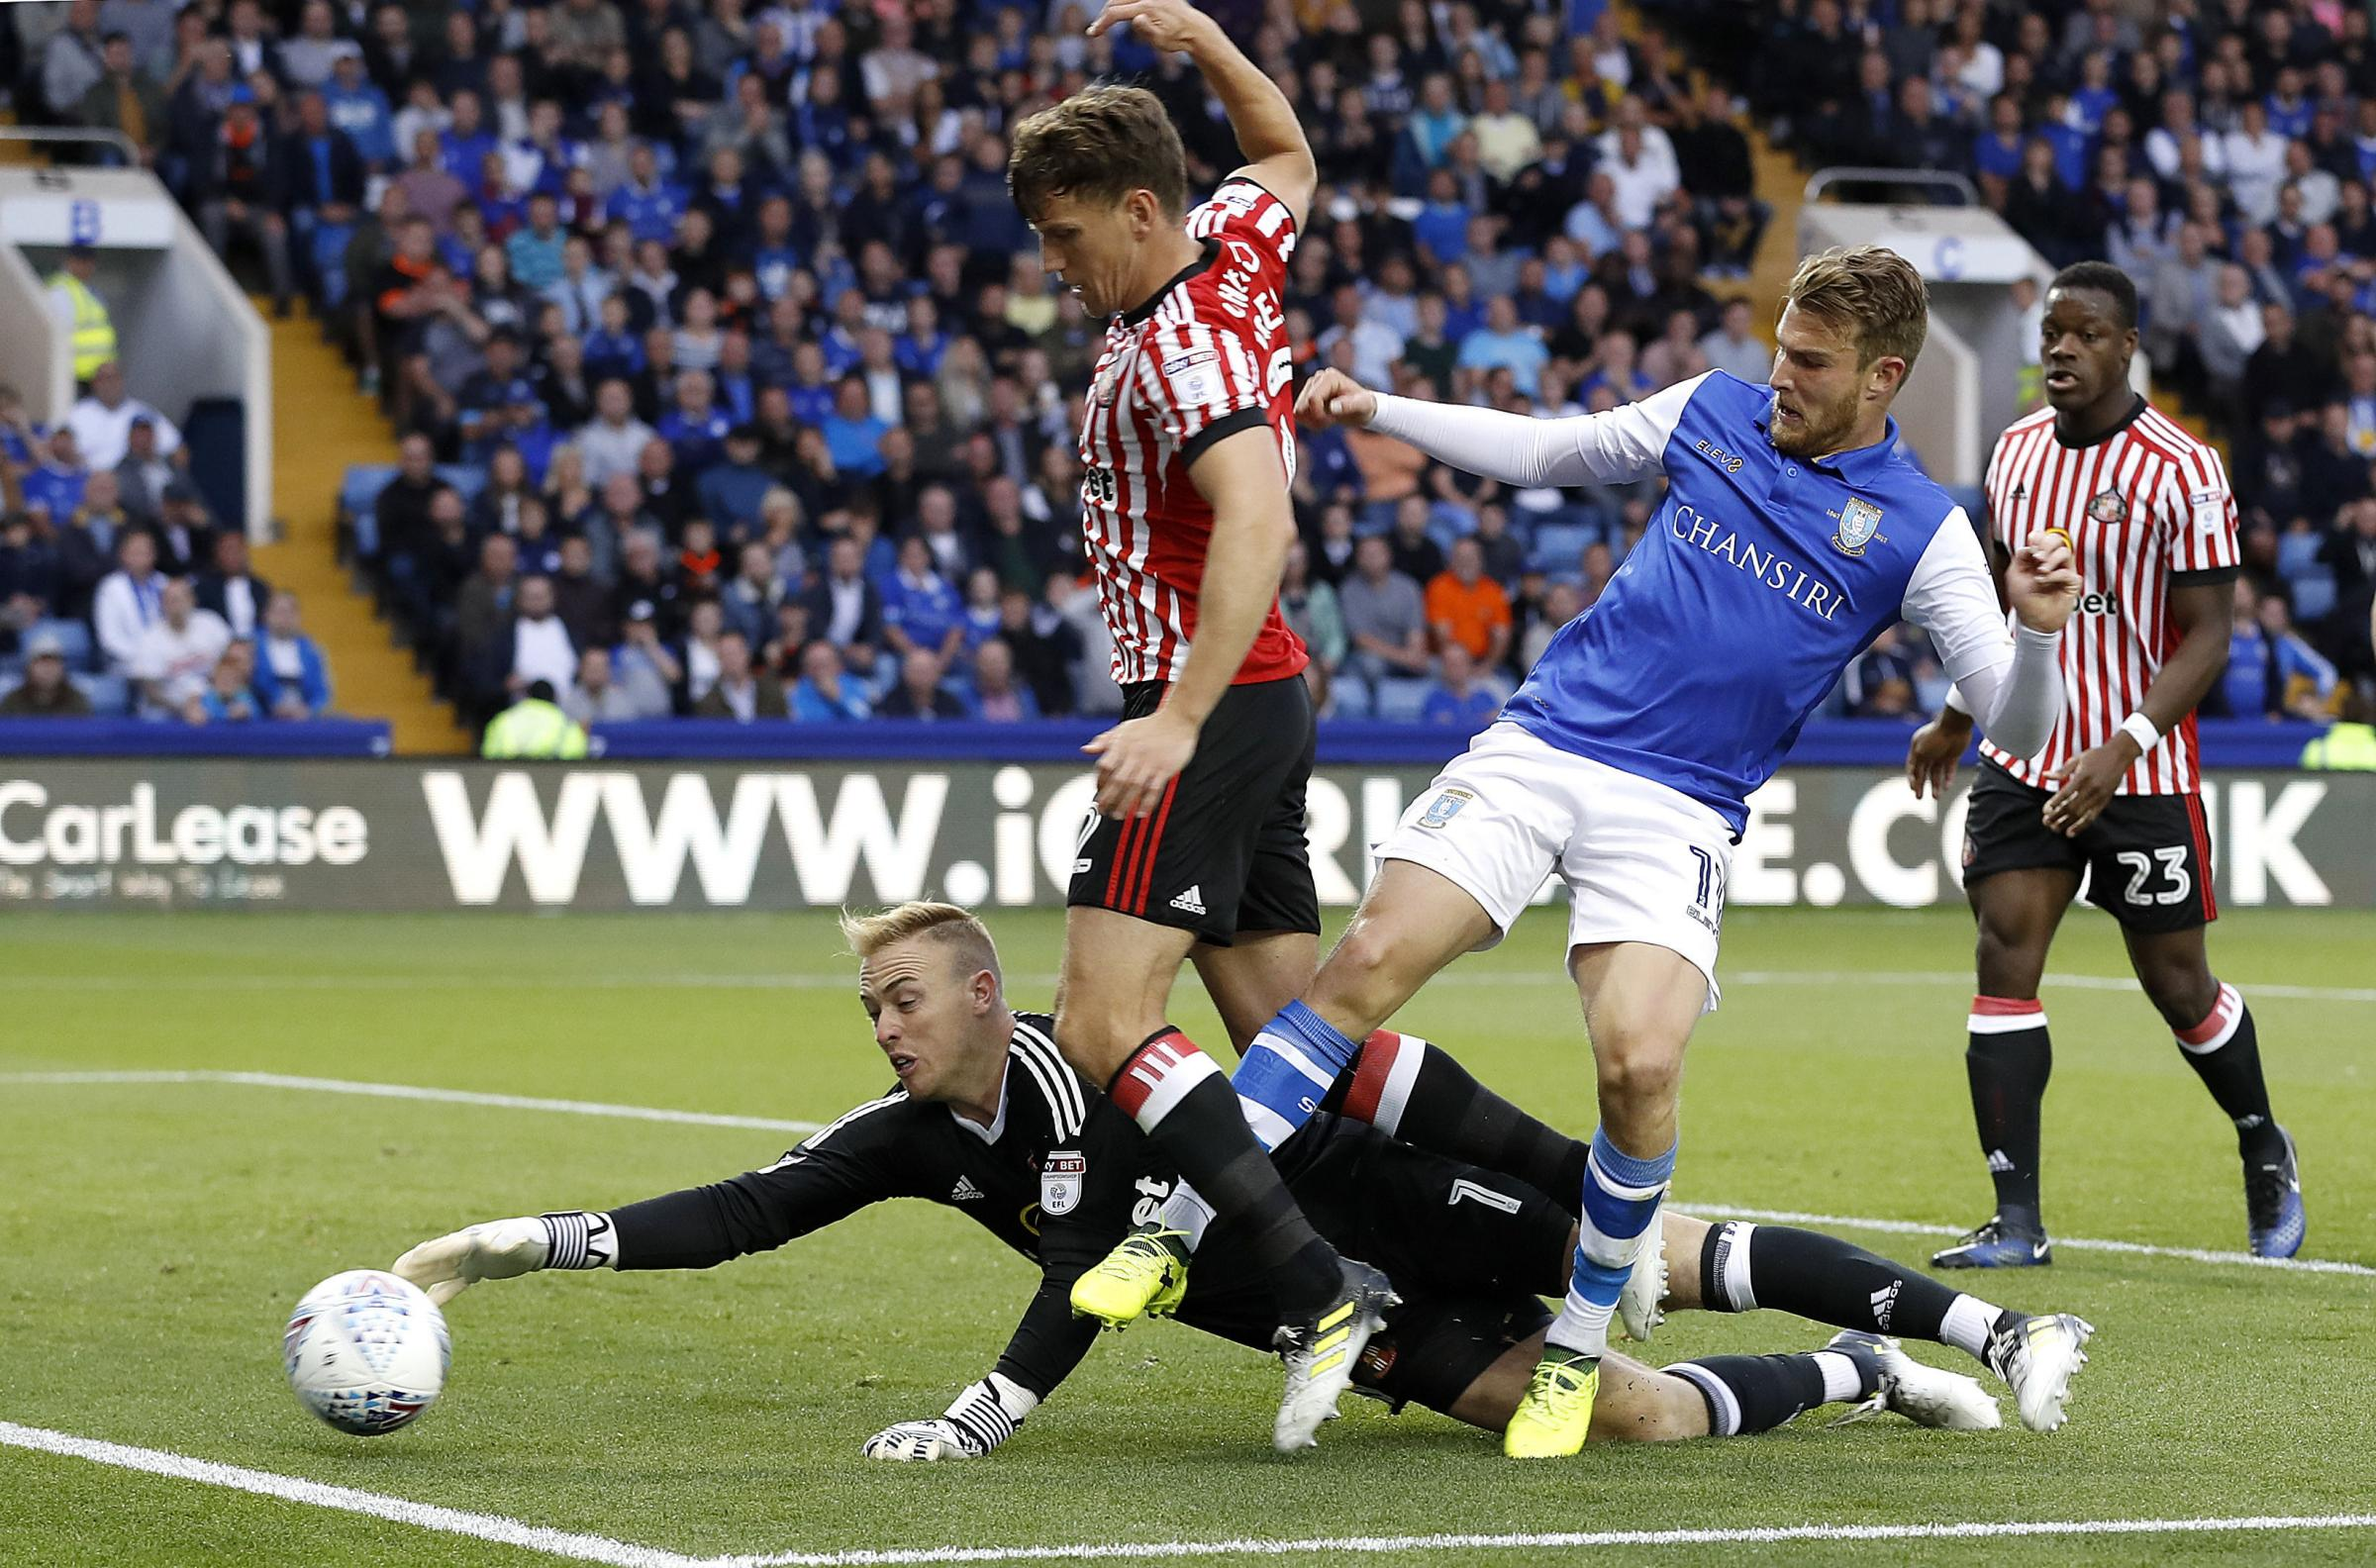 SUPPORT: Sunderland goalkeeper Jason Steele, pictured in action at Hillsborough, Sheffield, made plenty of saves on Saturday.